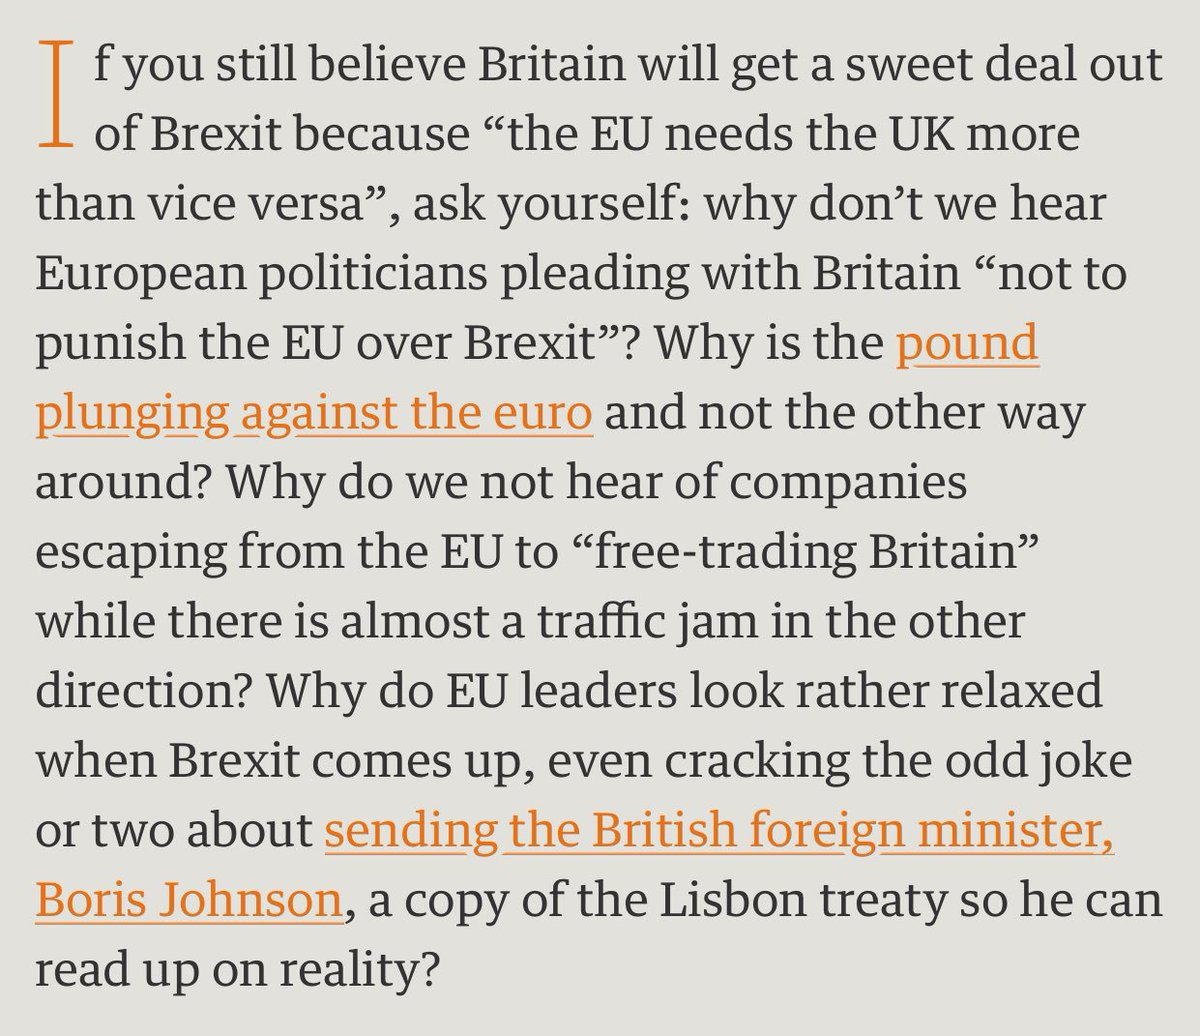 """""""They need us more than we need them"""" says the Brexit crowd. Er, no. https://t.co/Z95uac16jY https://t.co/MF7wqqJ5vH"""